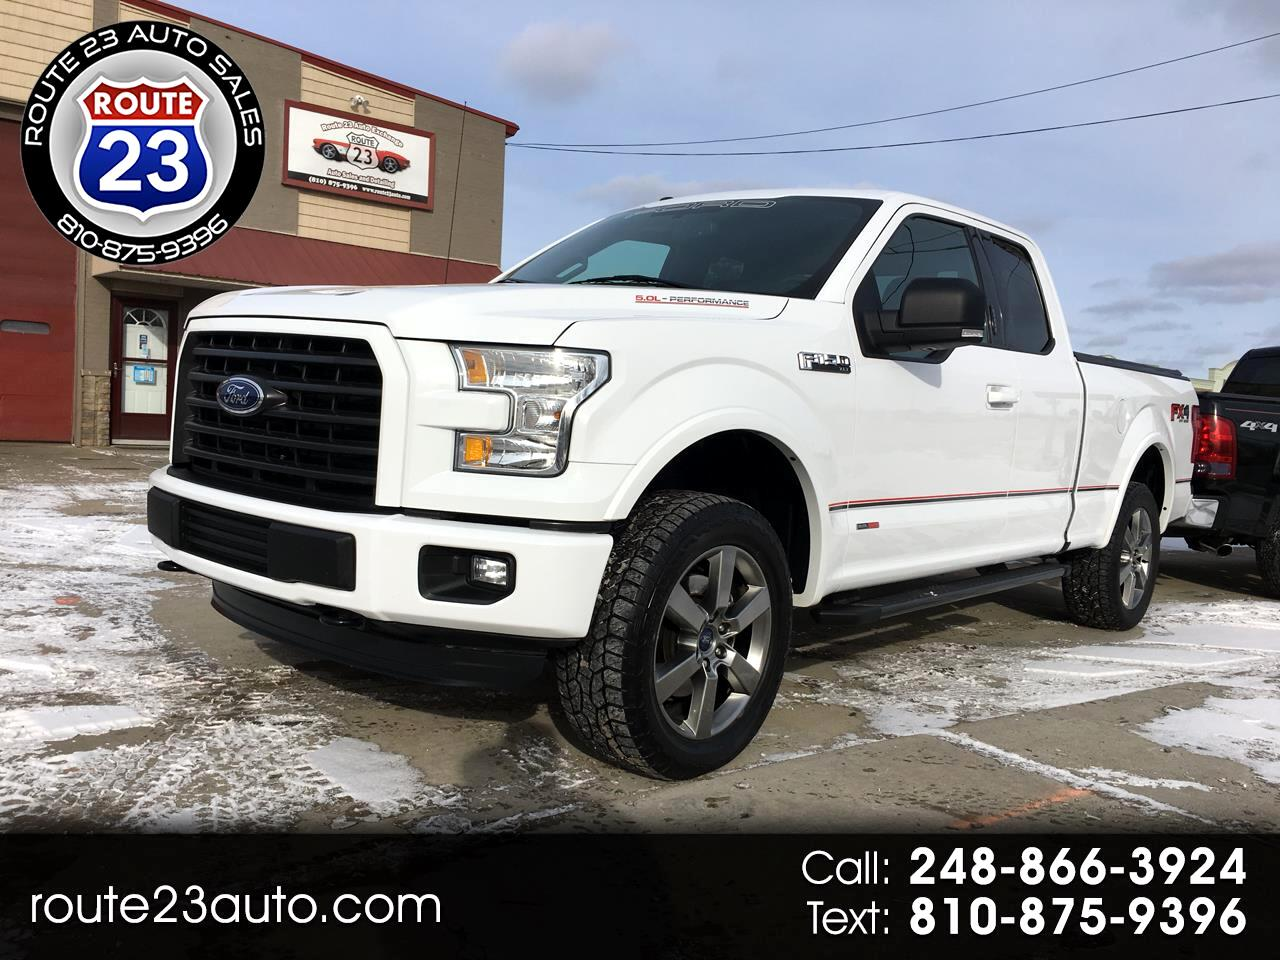 Used Cars For Sale Flint Mi 48507 Route 23 Auto